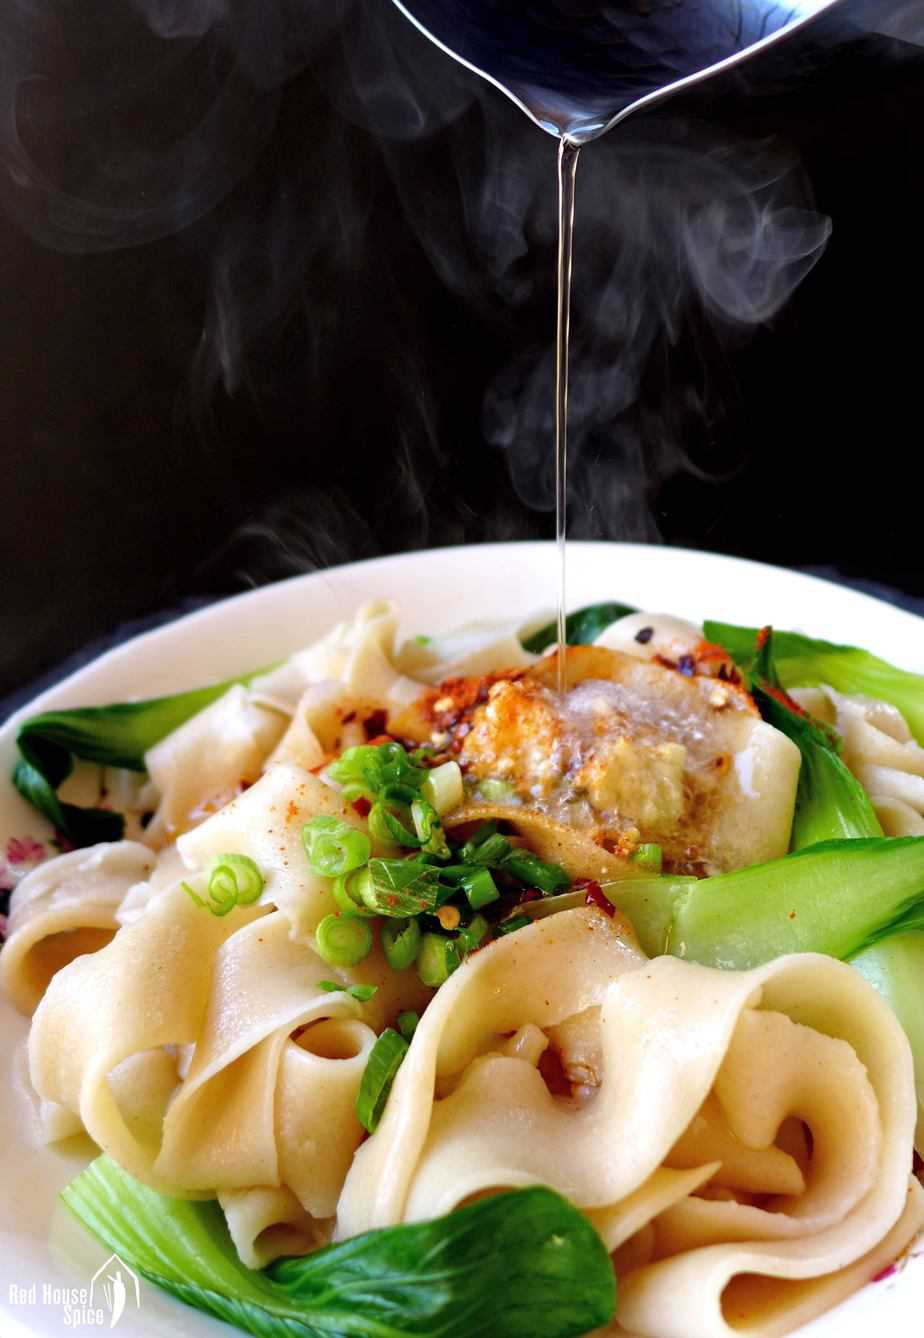 Hot oil pouring over Biang Biang noodles